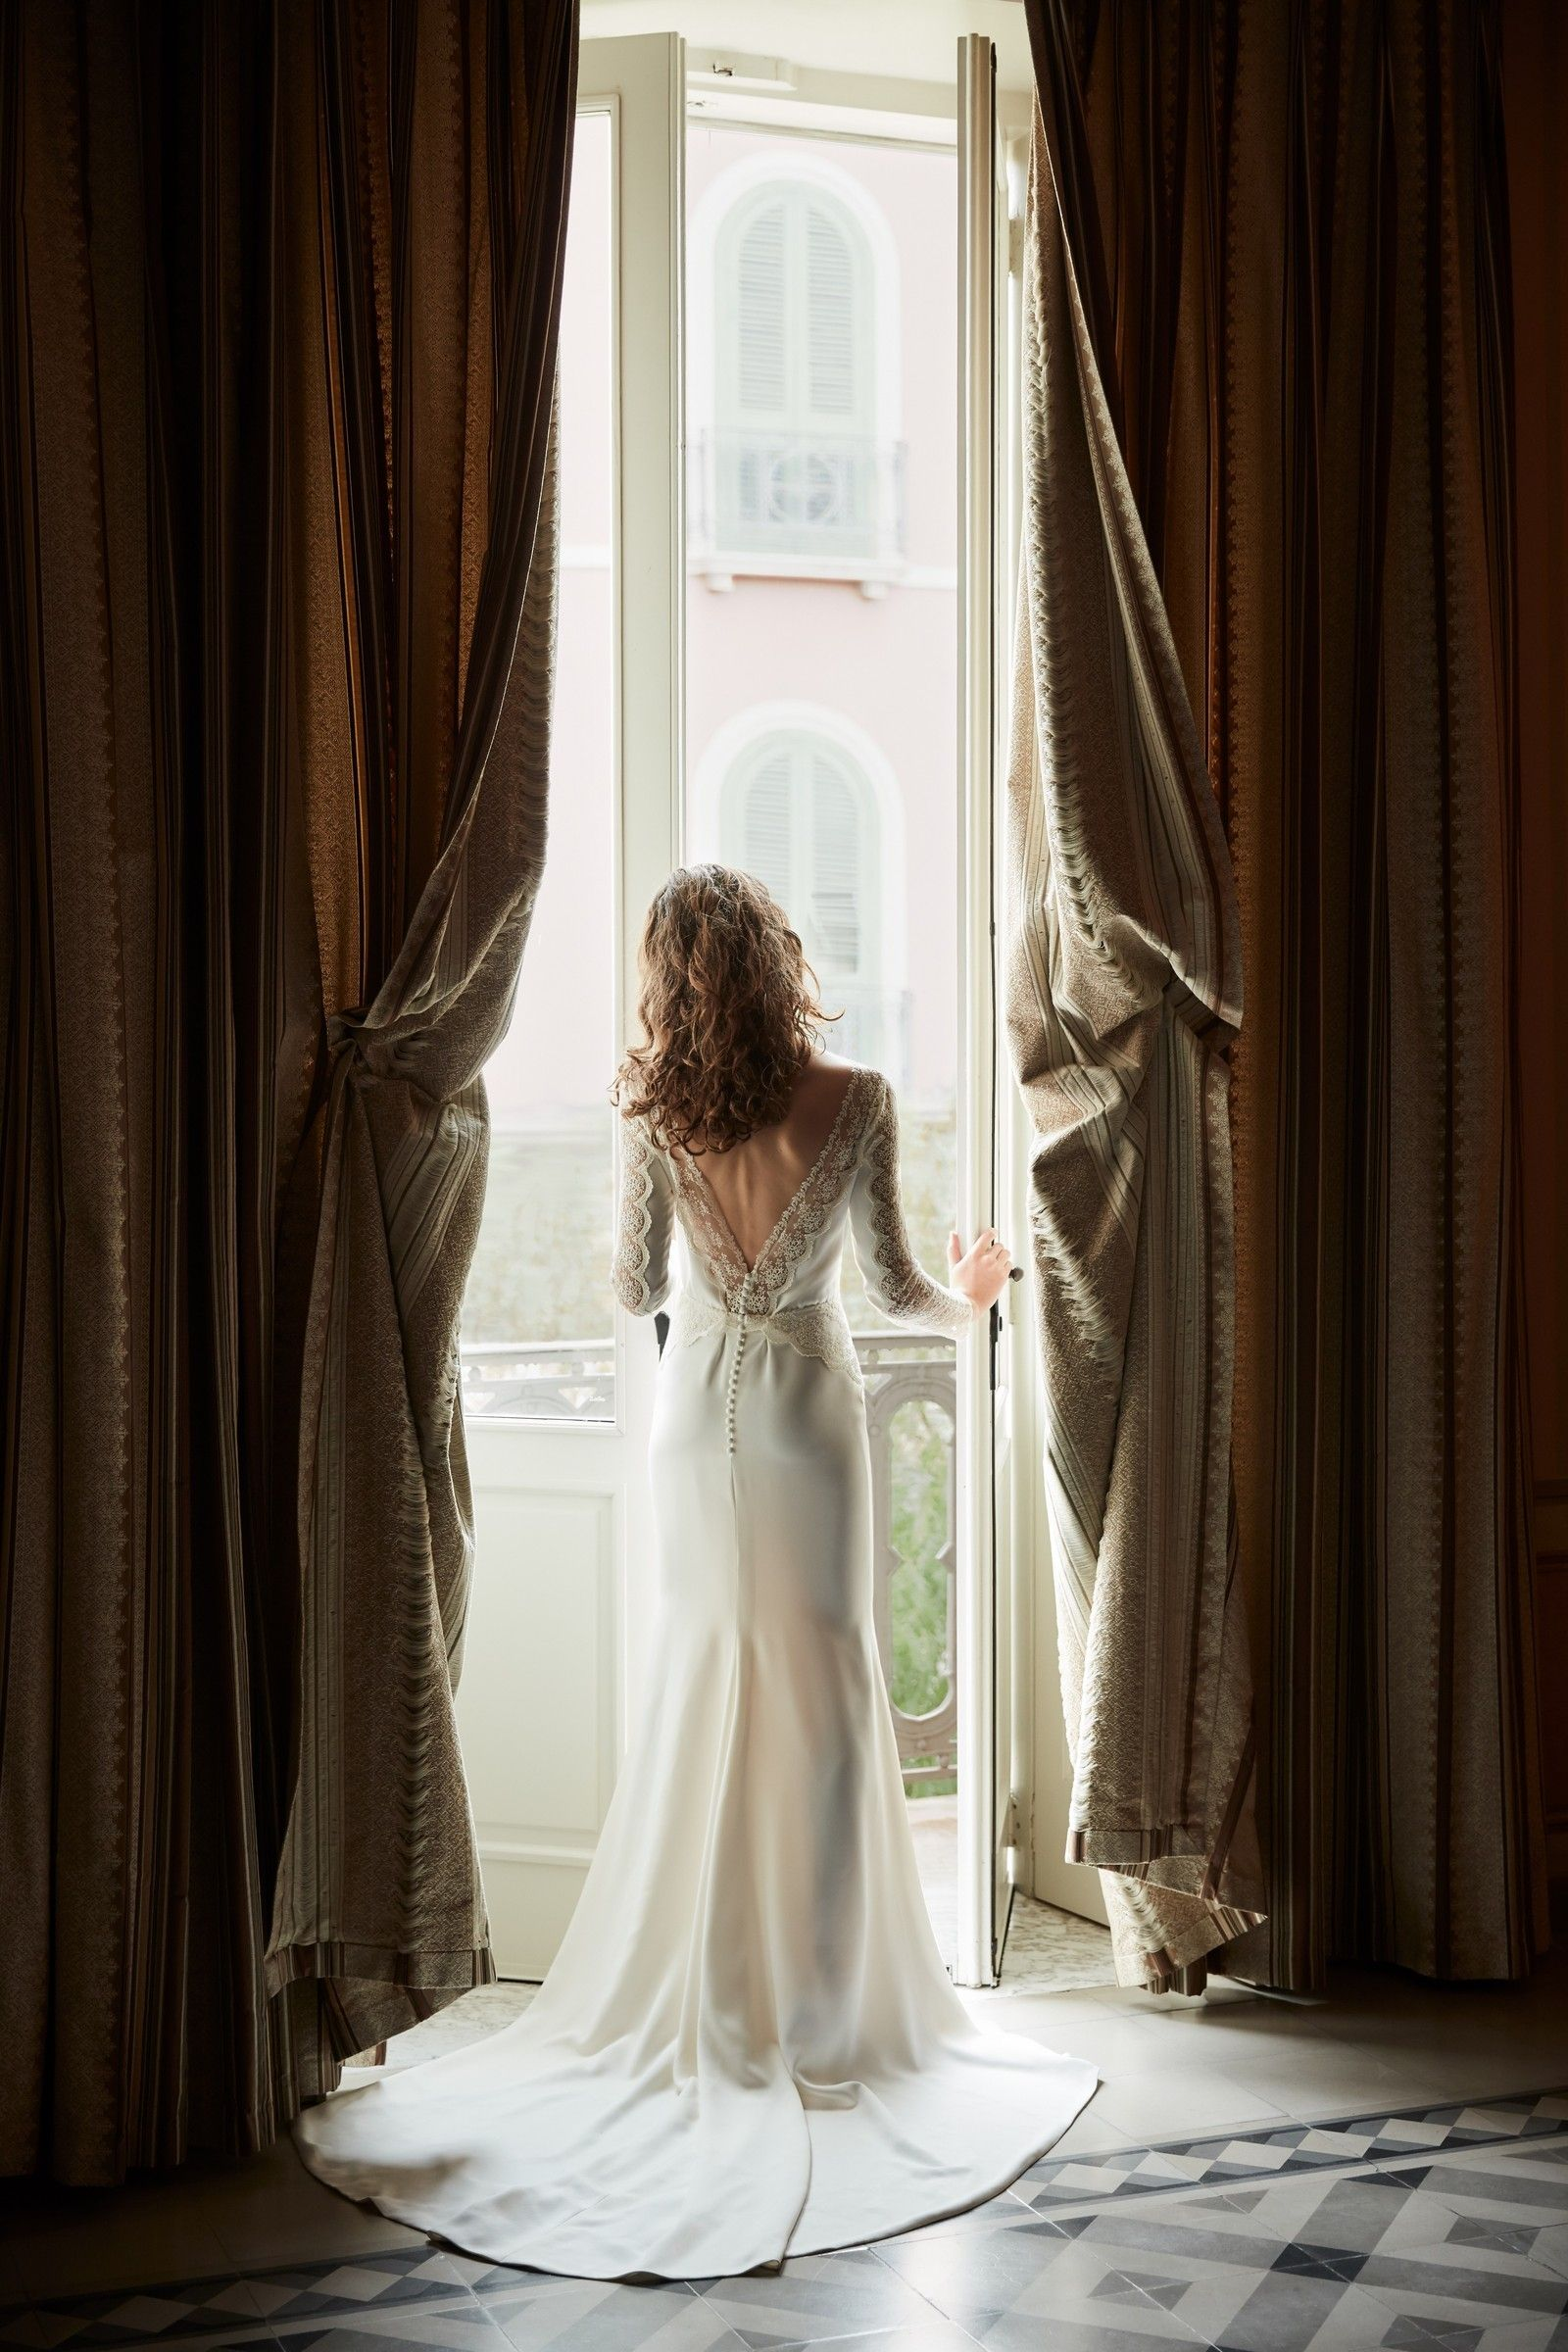 Pin by PhilQ. on WEDDINGS/ Dresses | Pinterest | Gowns, Wedding ...